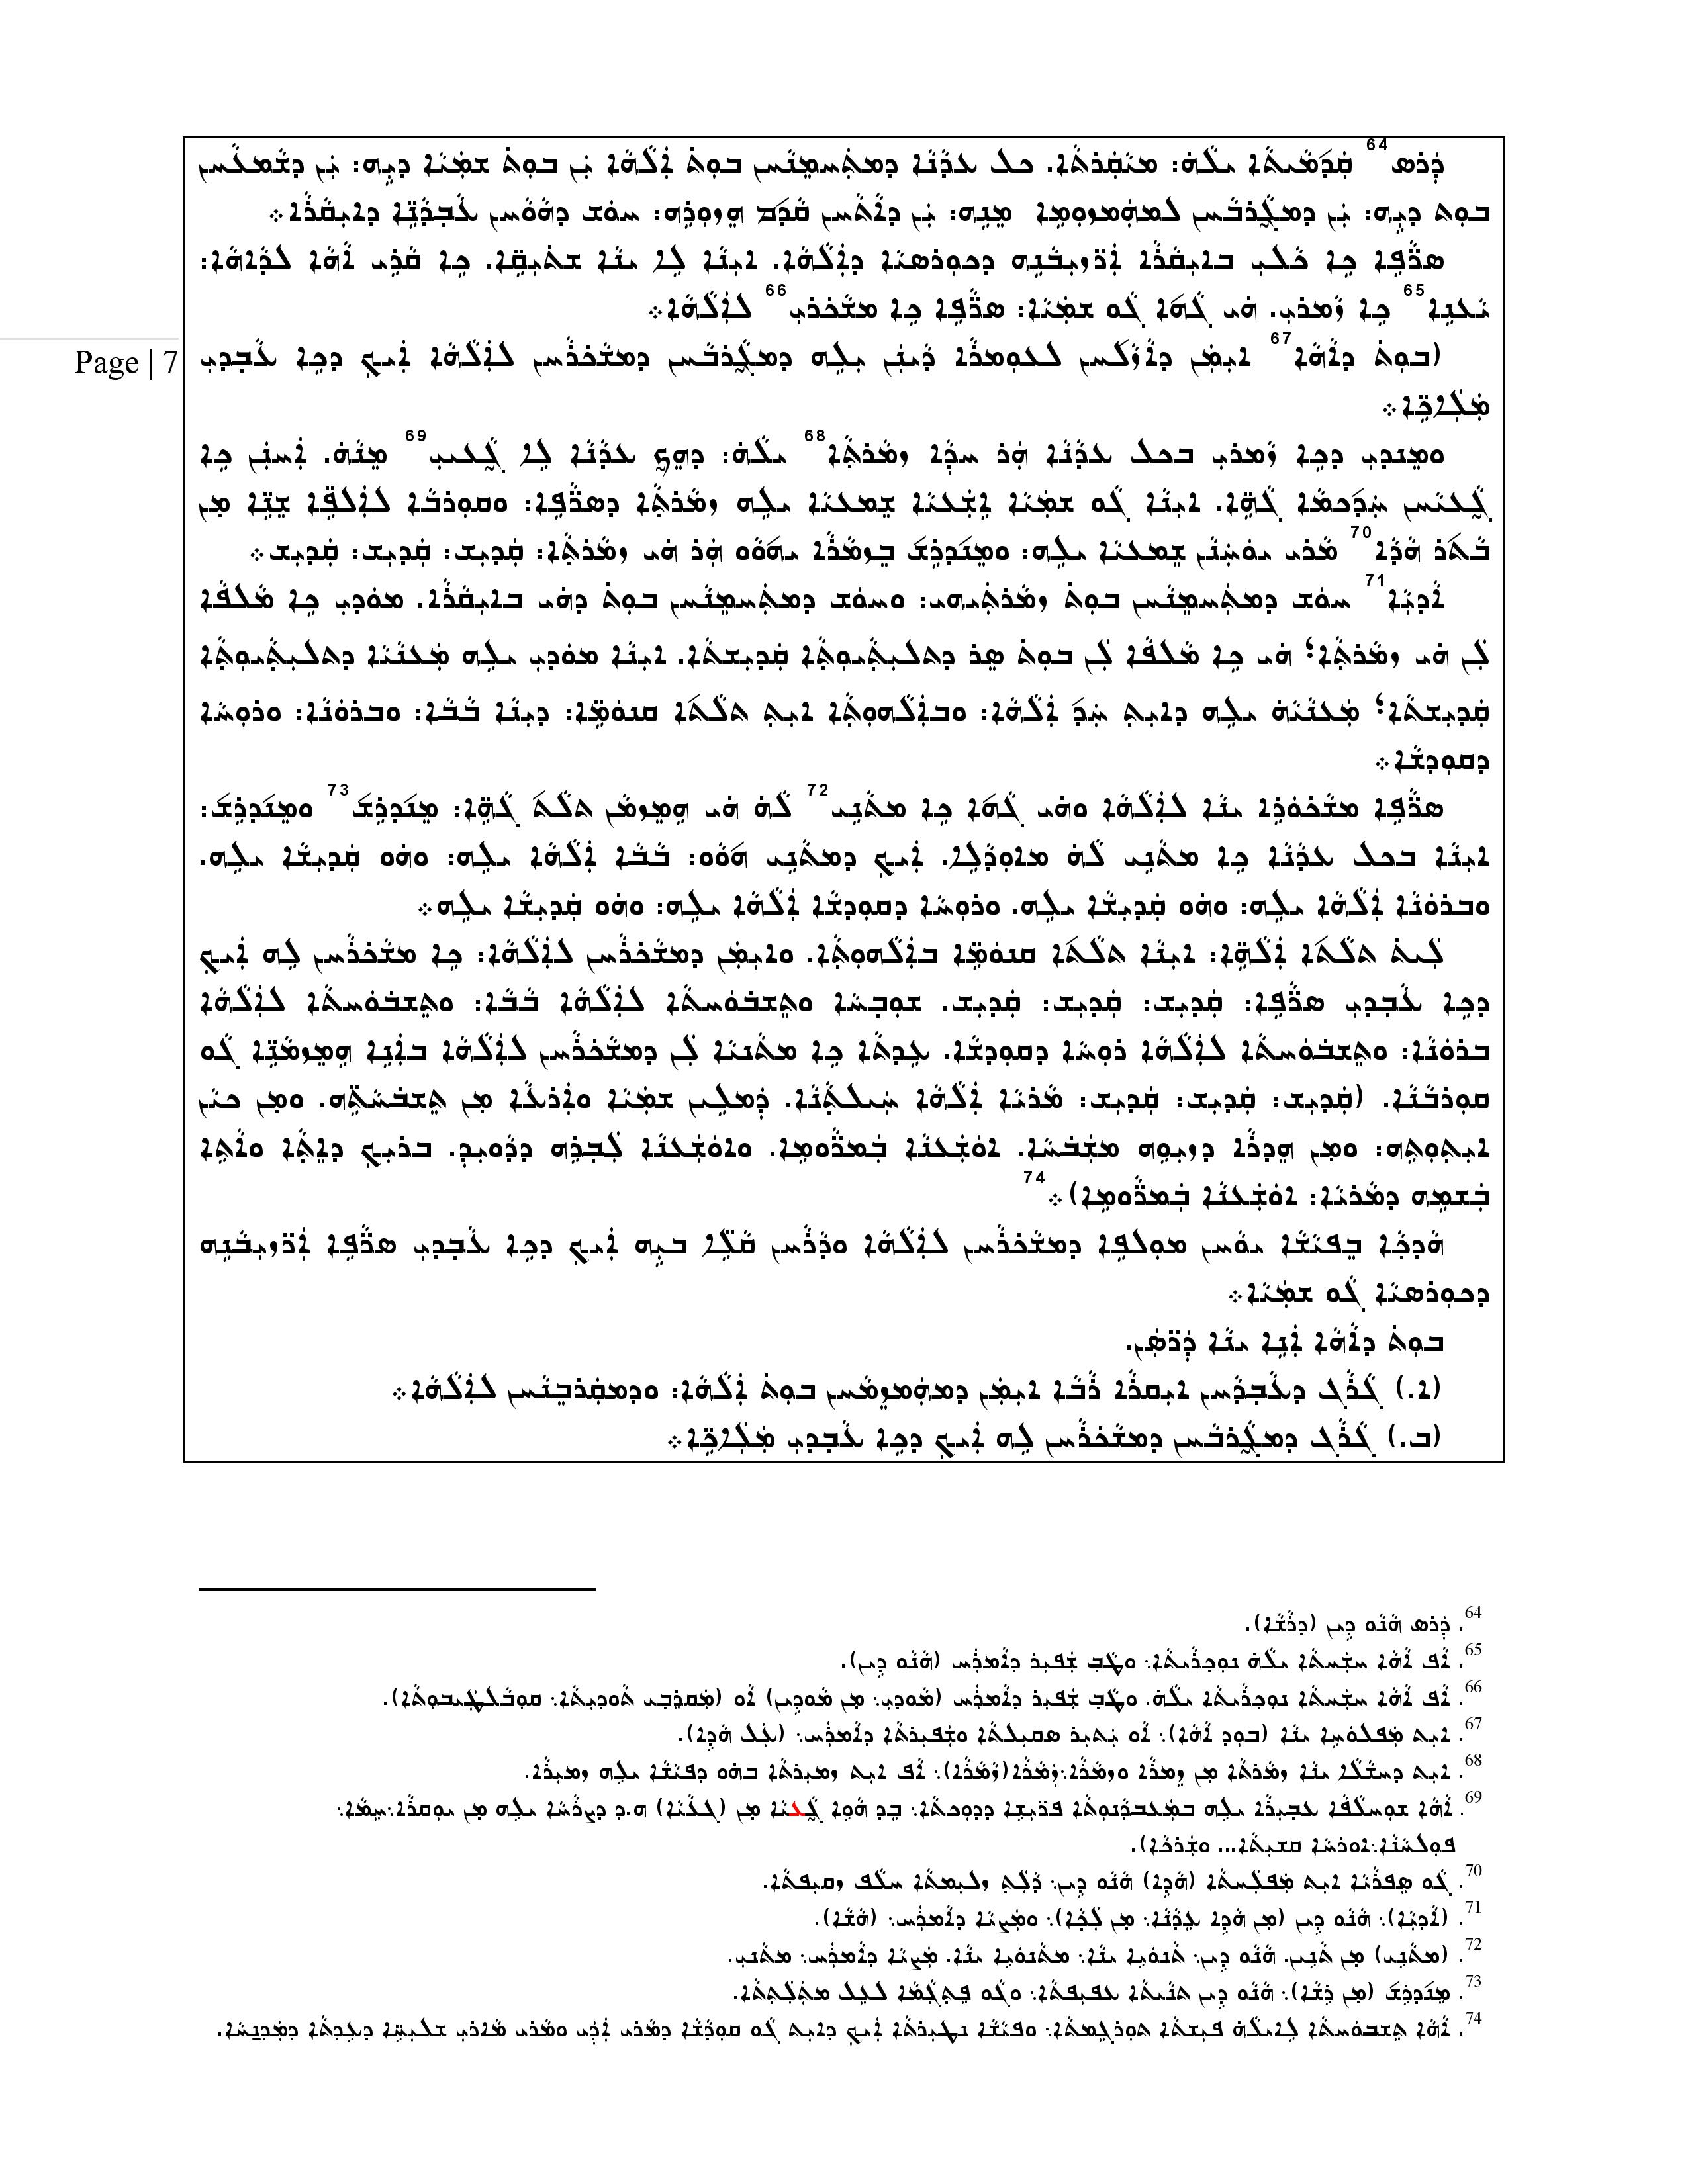 16-07-30-page-007